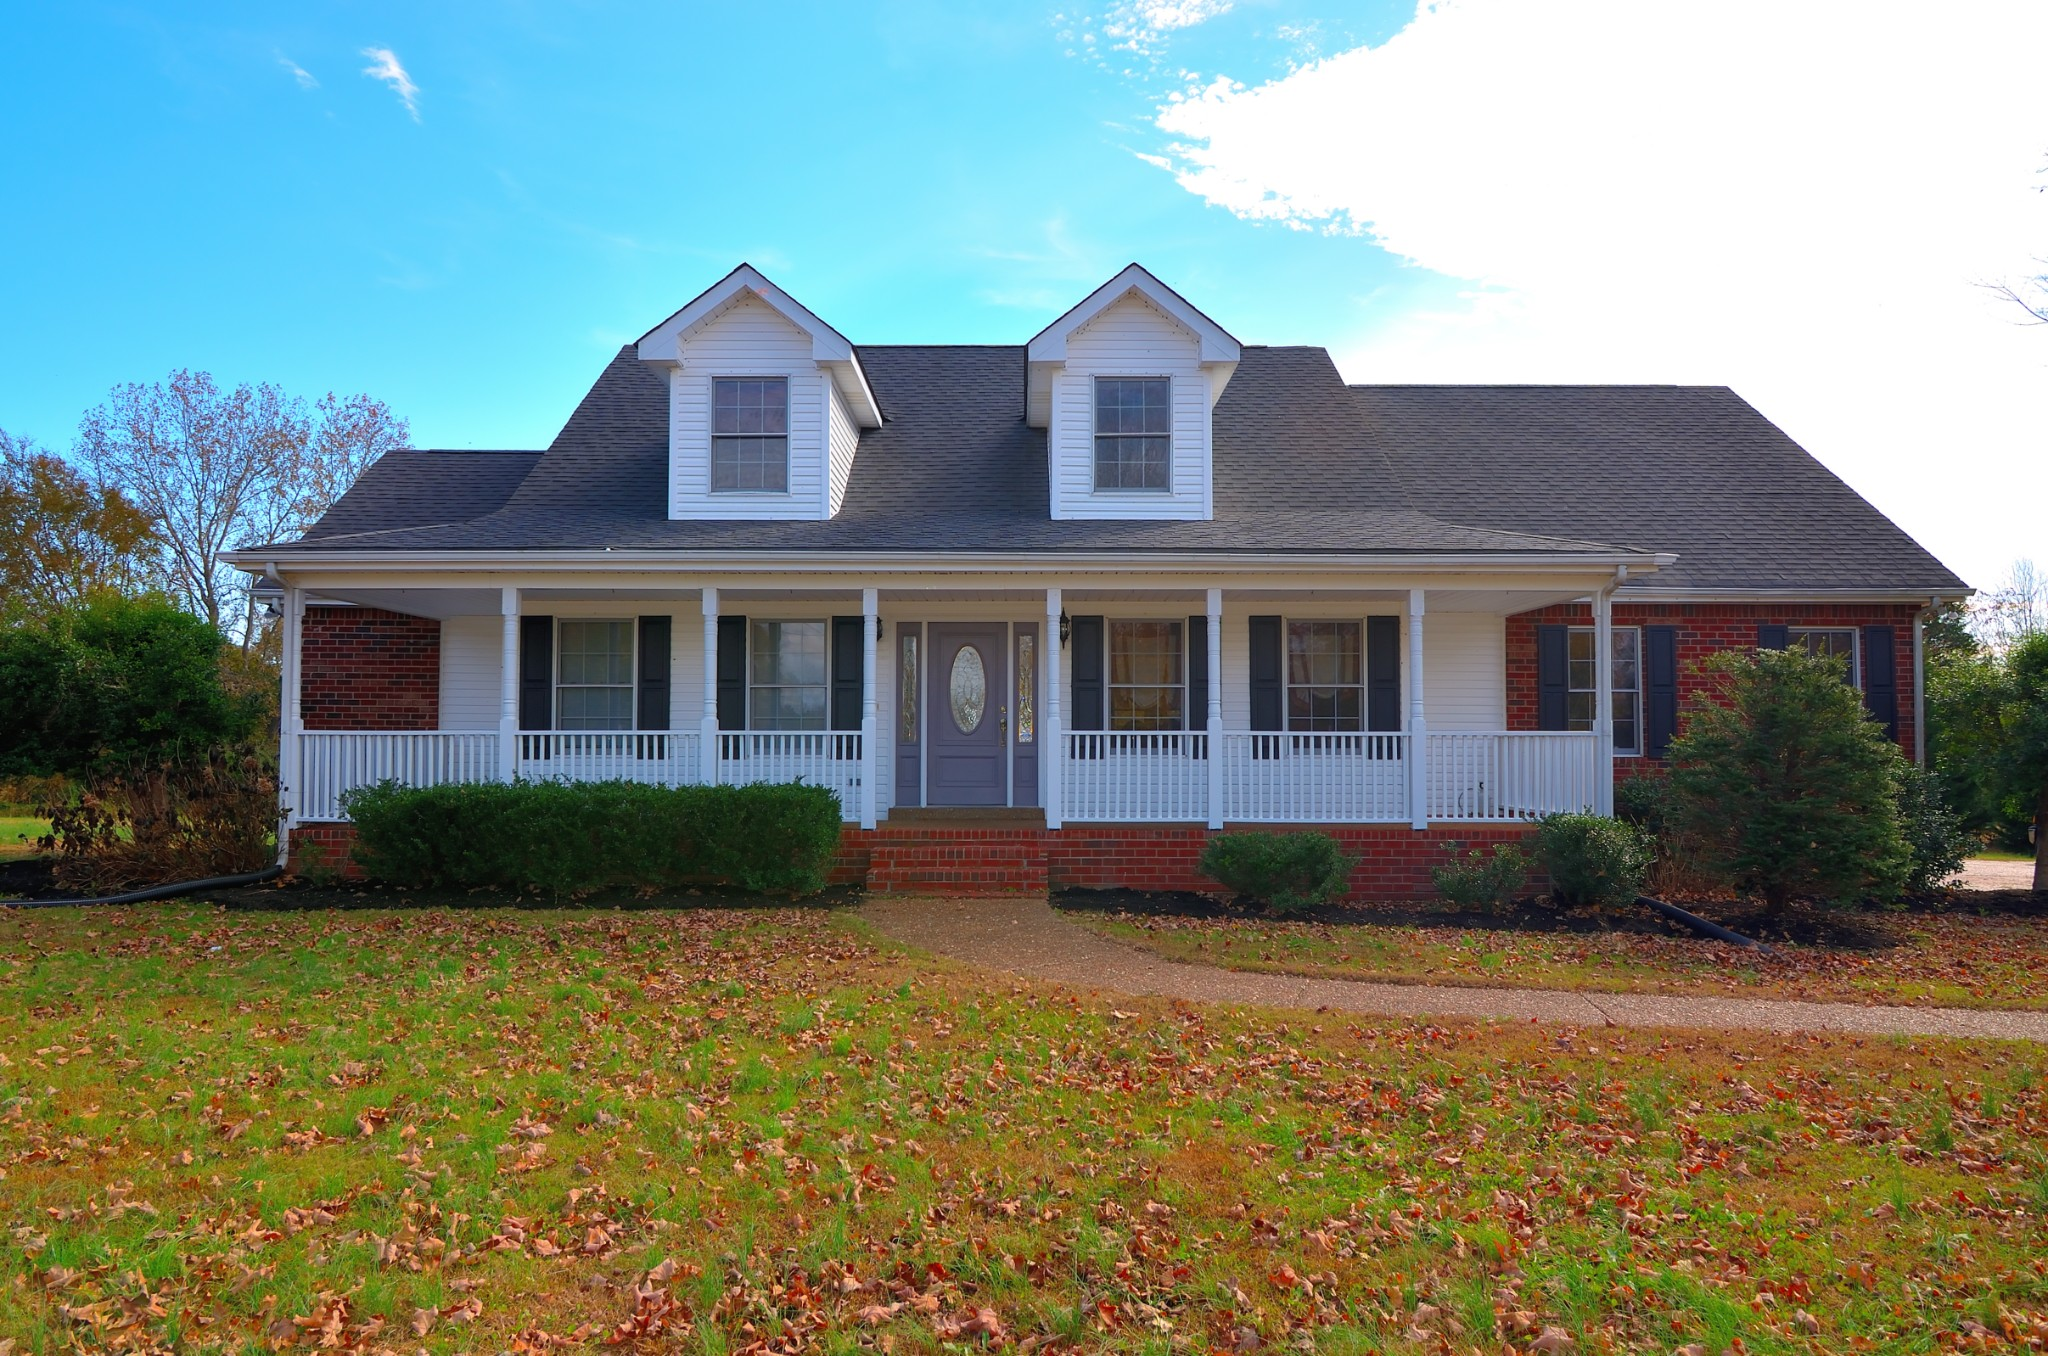 630 Poplar Ridge Rd, Chapmansboro, TN 37035 - Chapmansboro, TN real estate listing